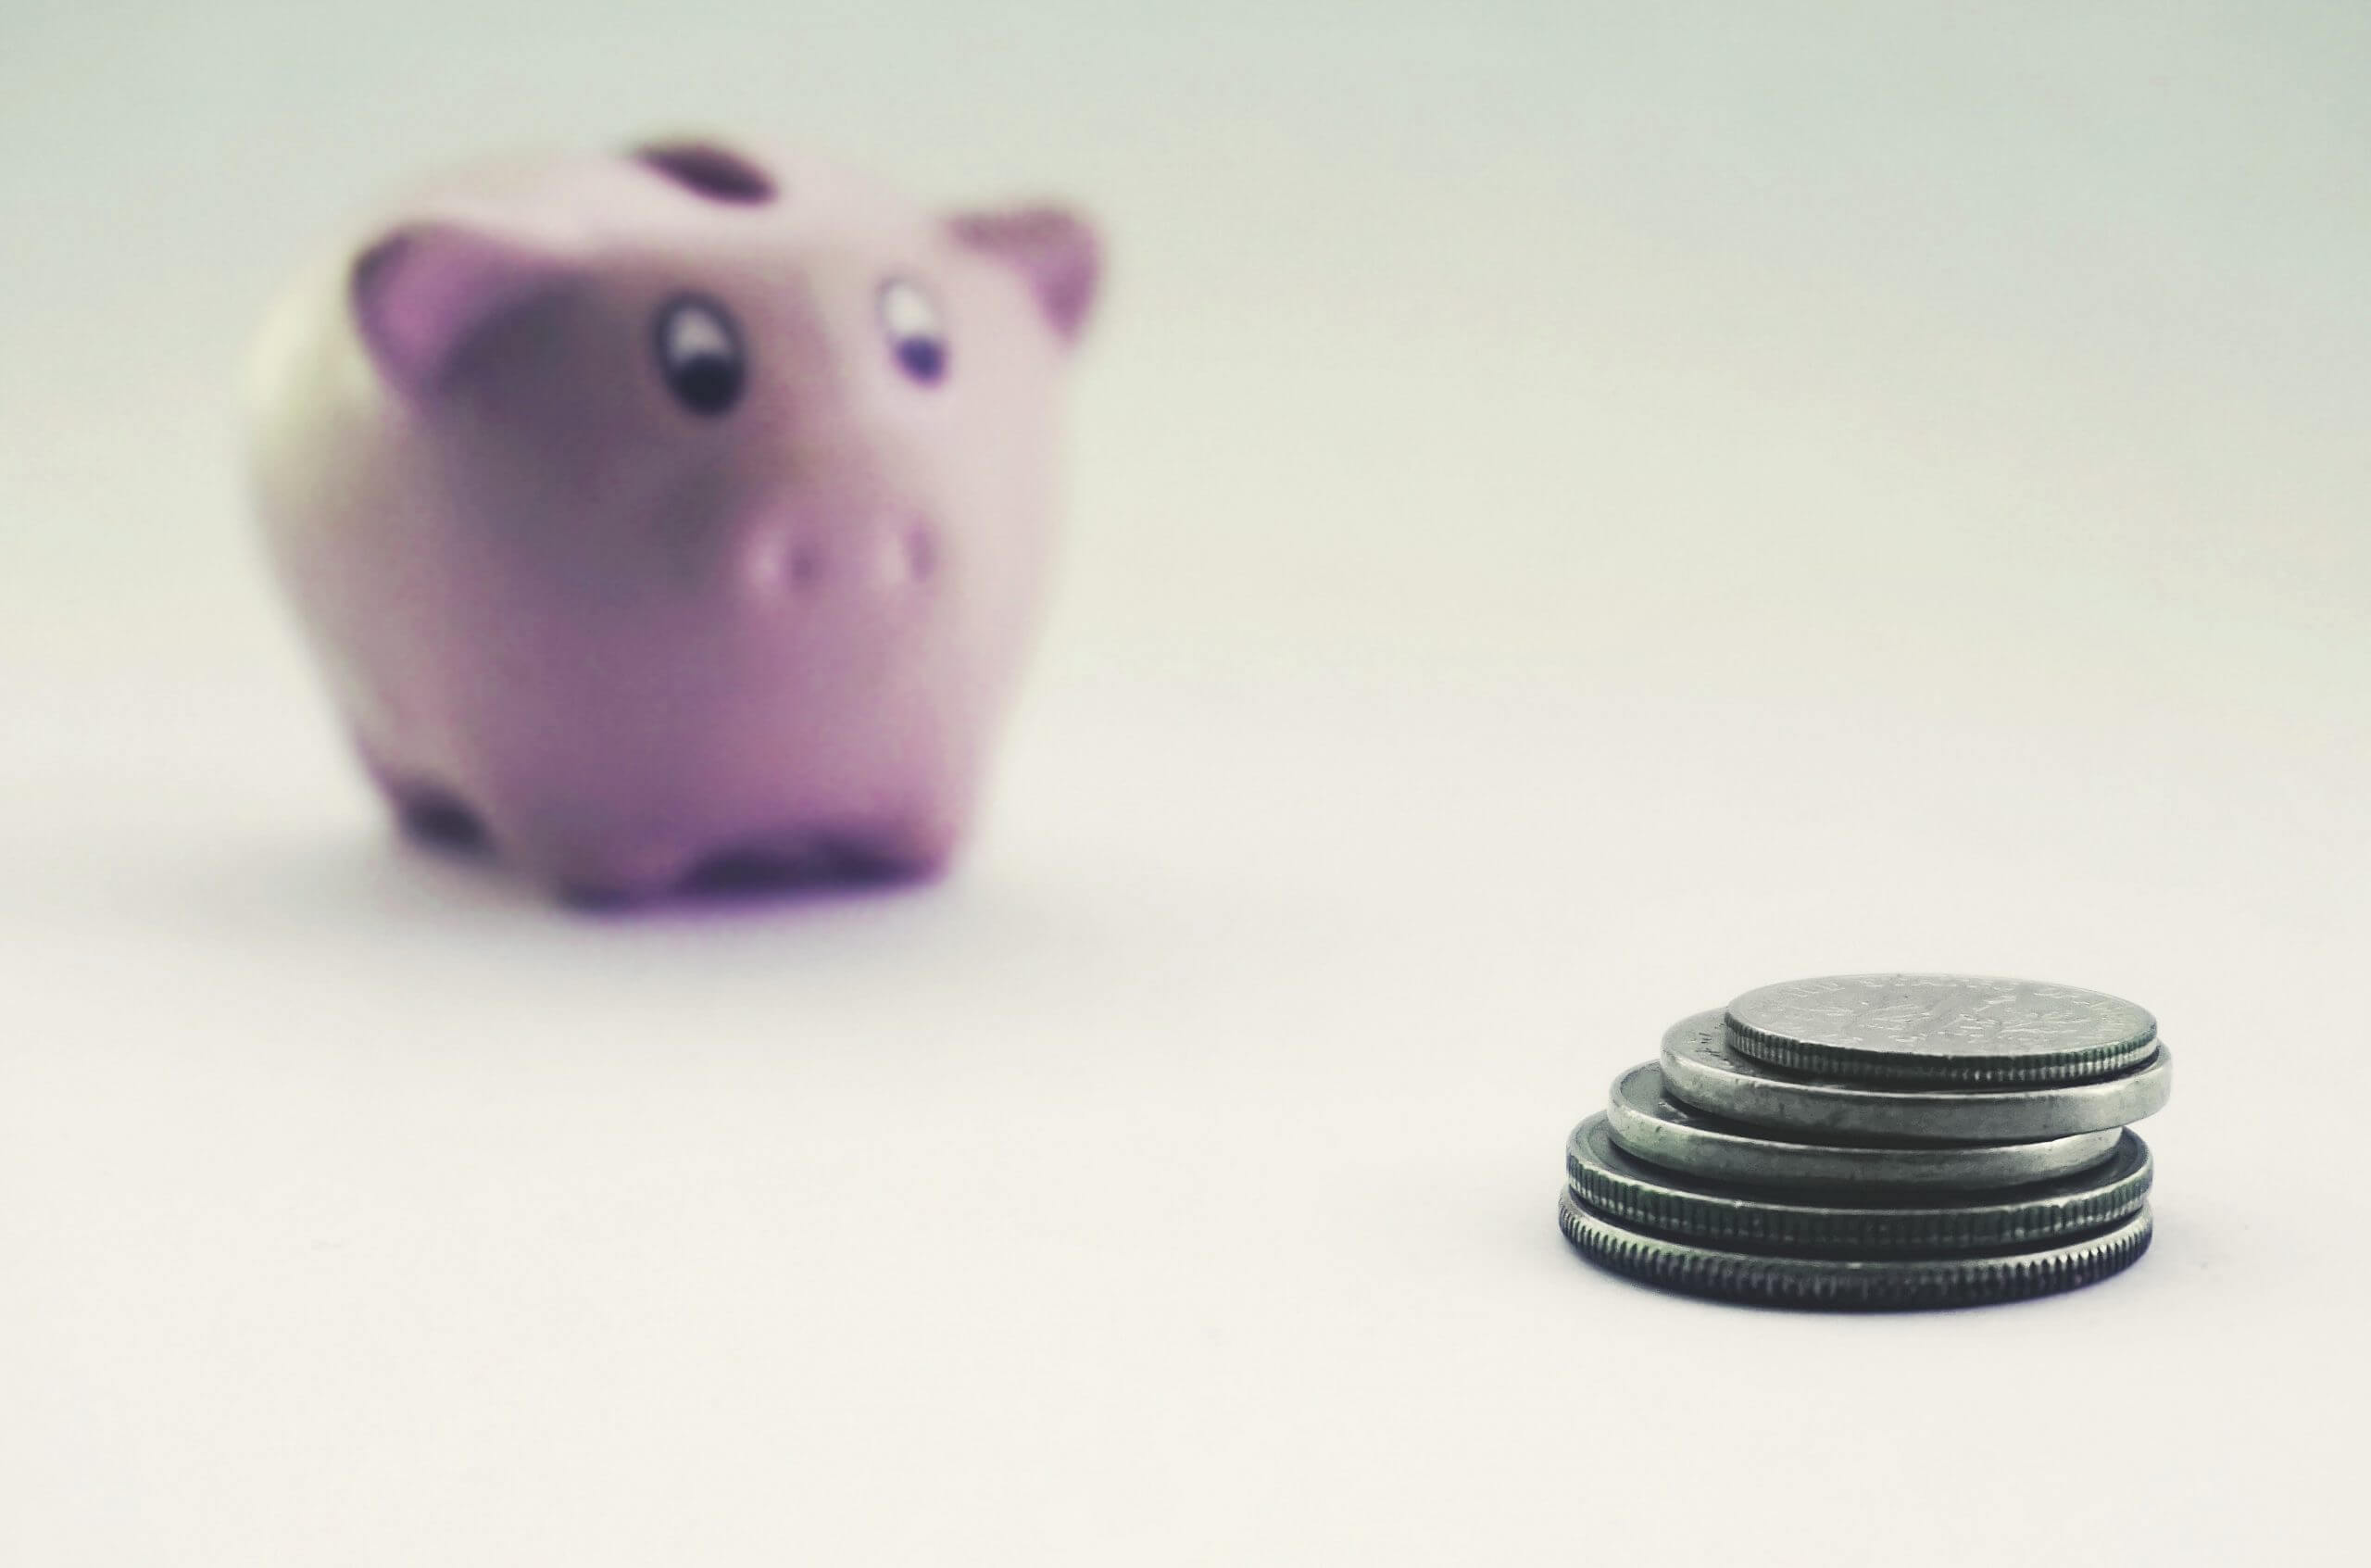 As law firms focus on costs, understanding the funding options for clients will improve the bottom line